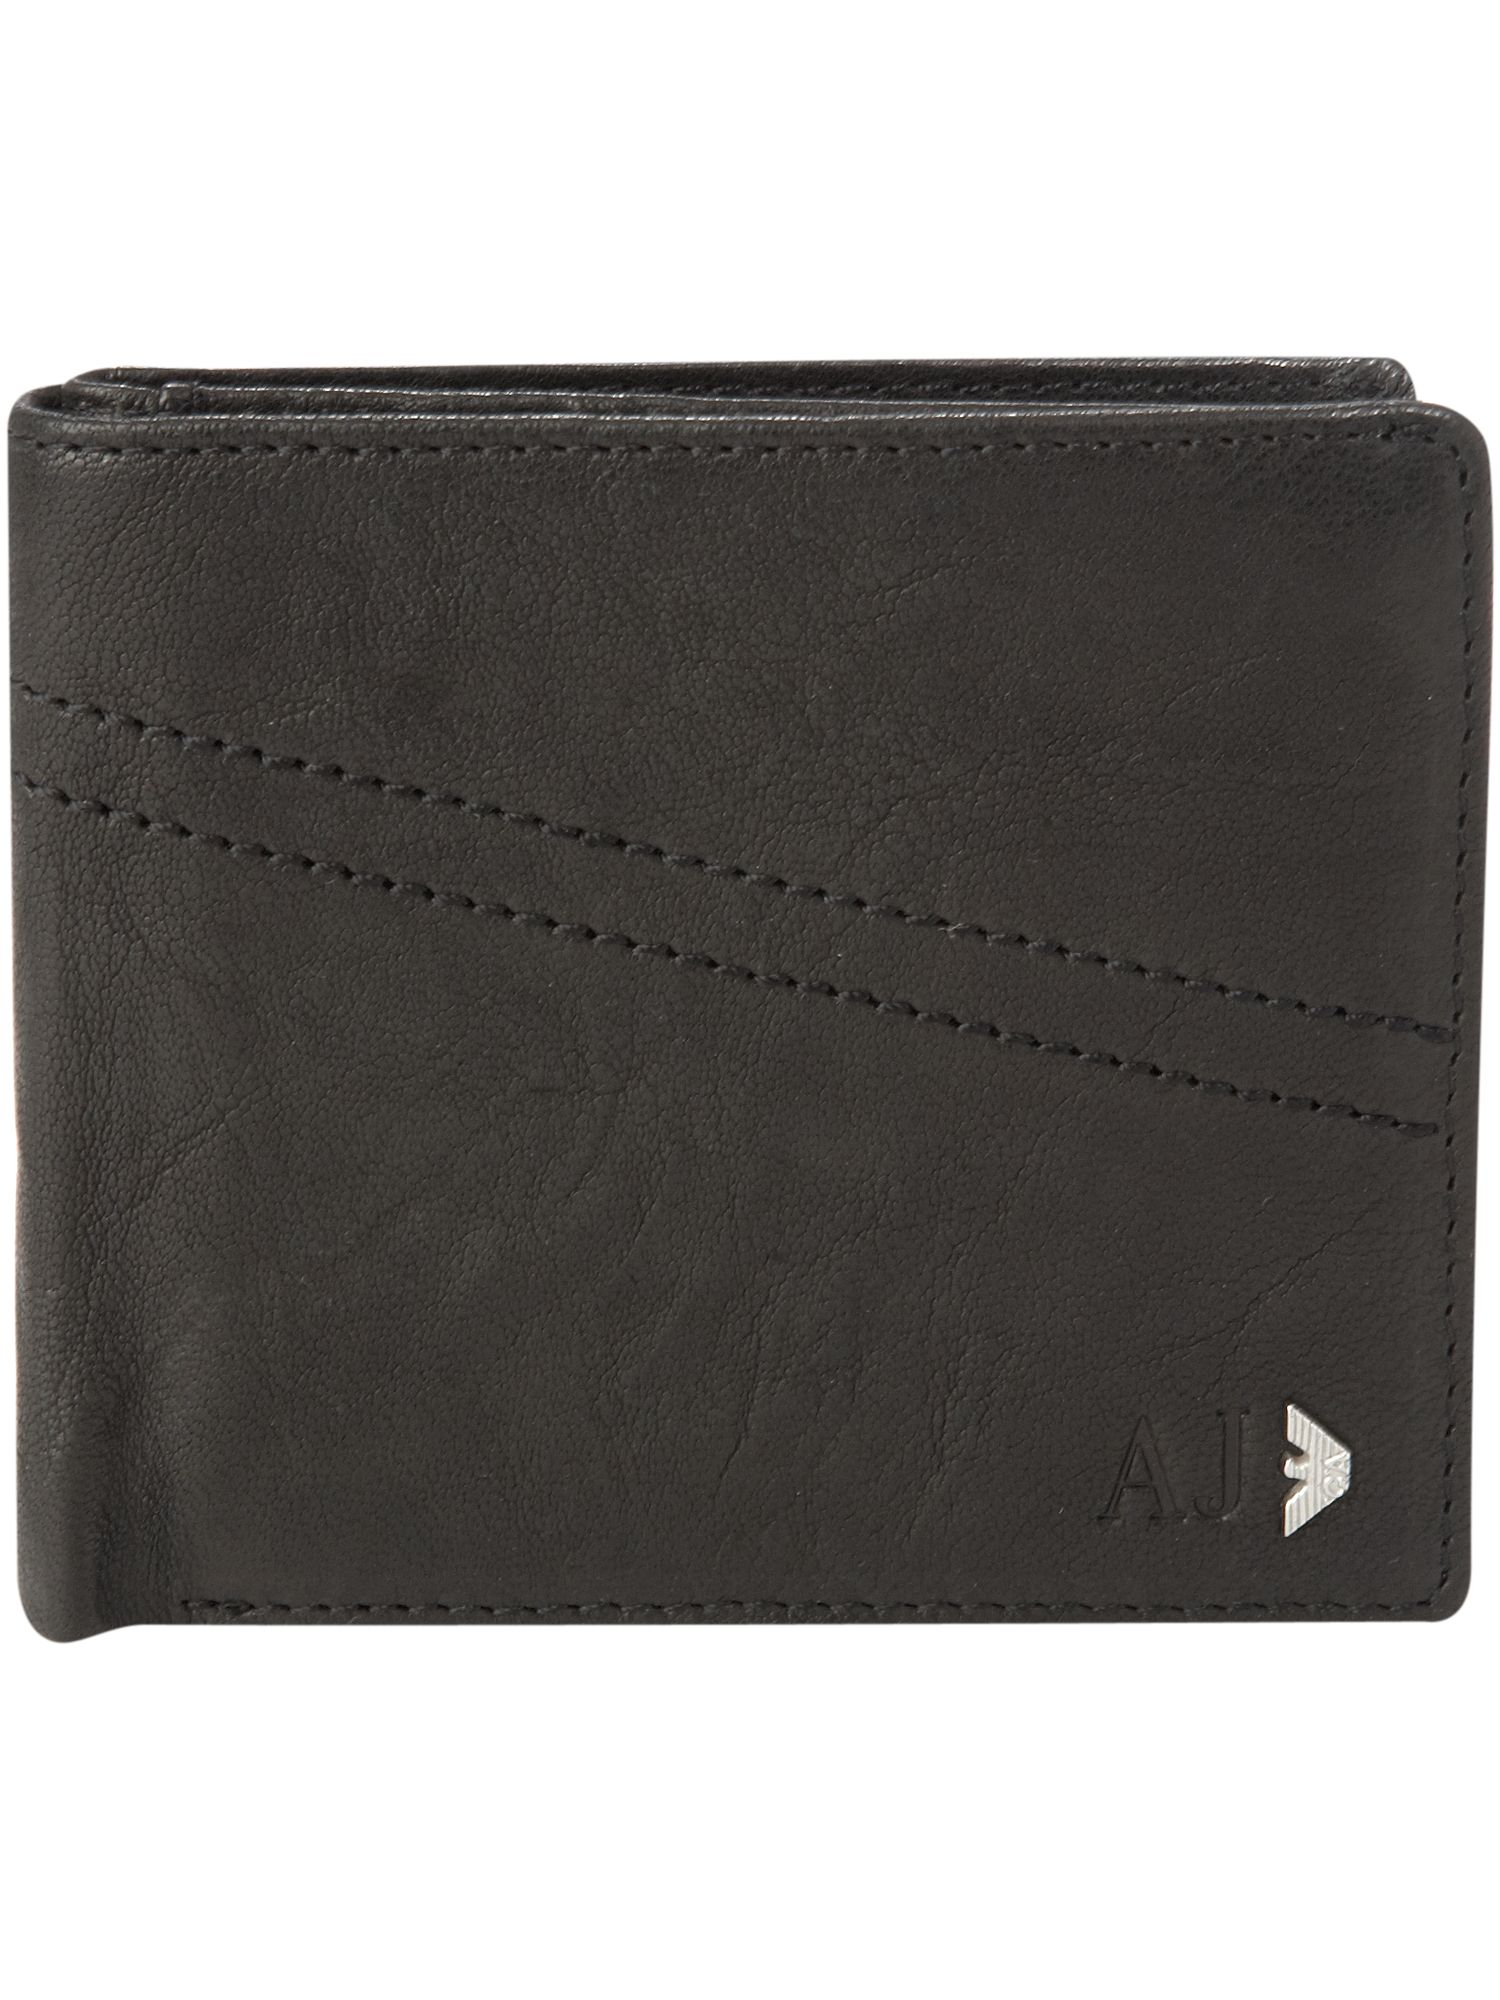 Armani Jeans Billfold logo wallet product image